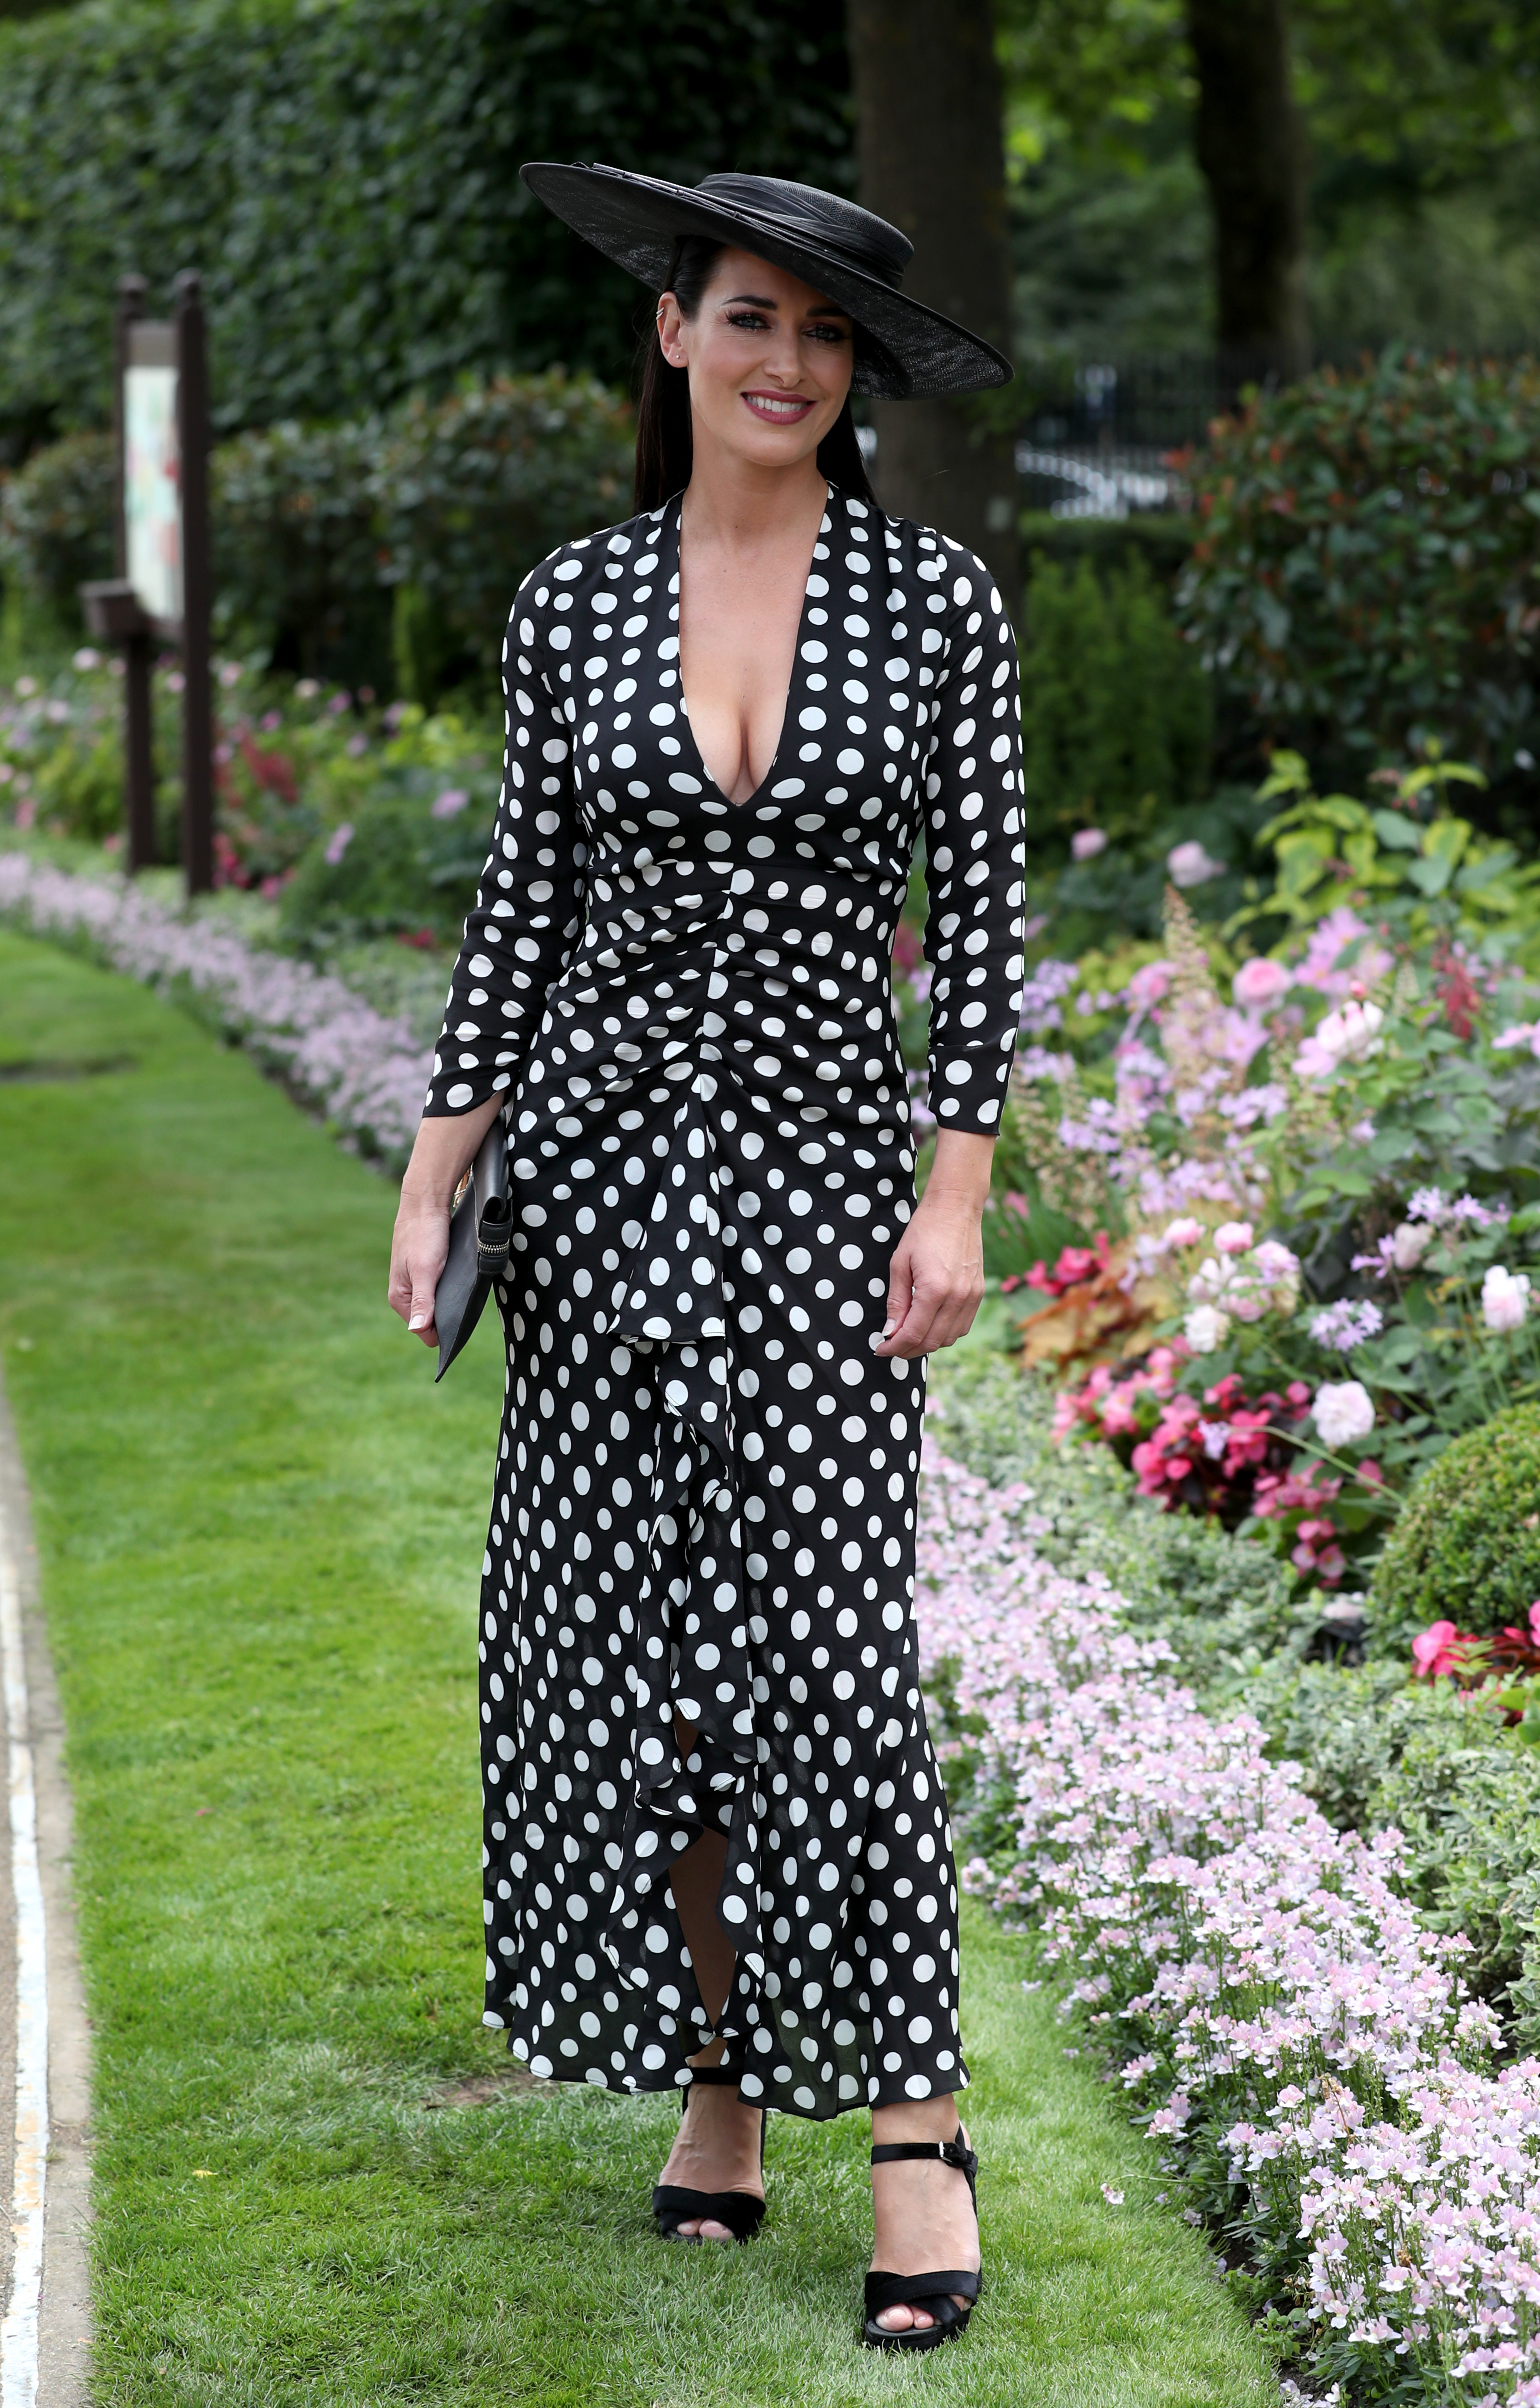 Kirsty Gallacher at Ascot